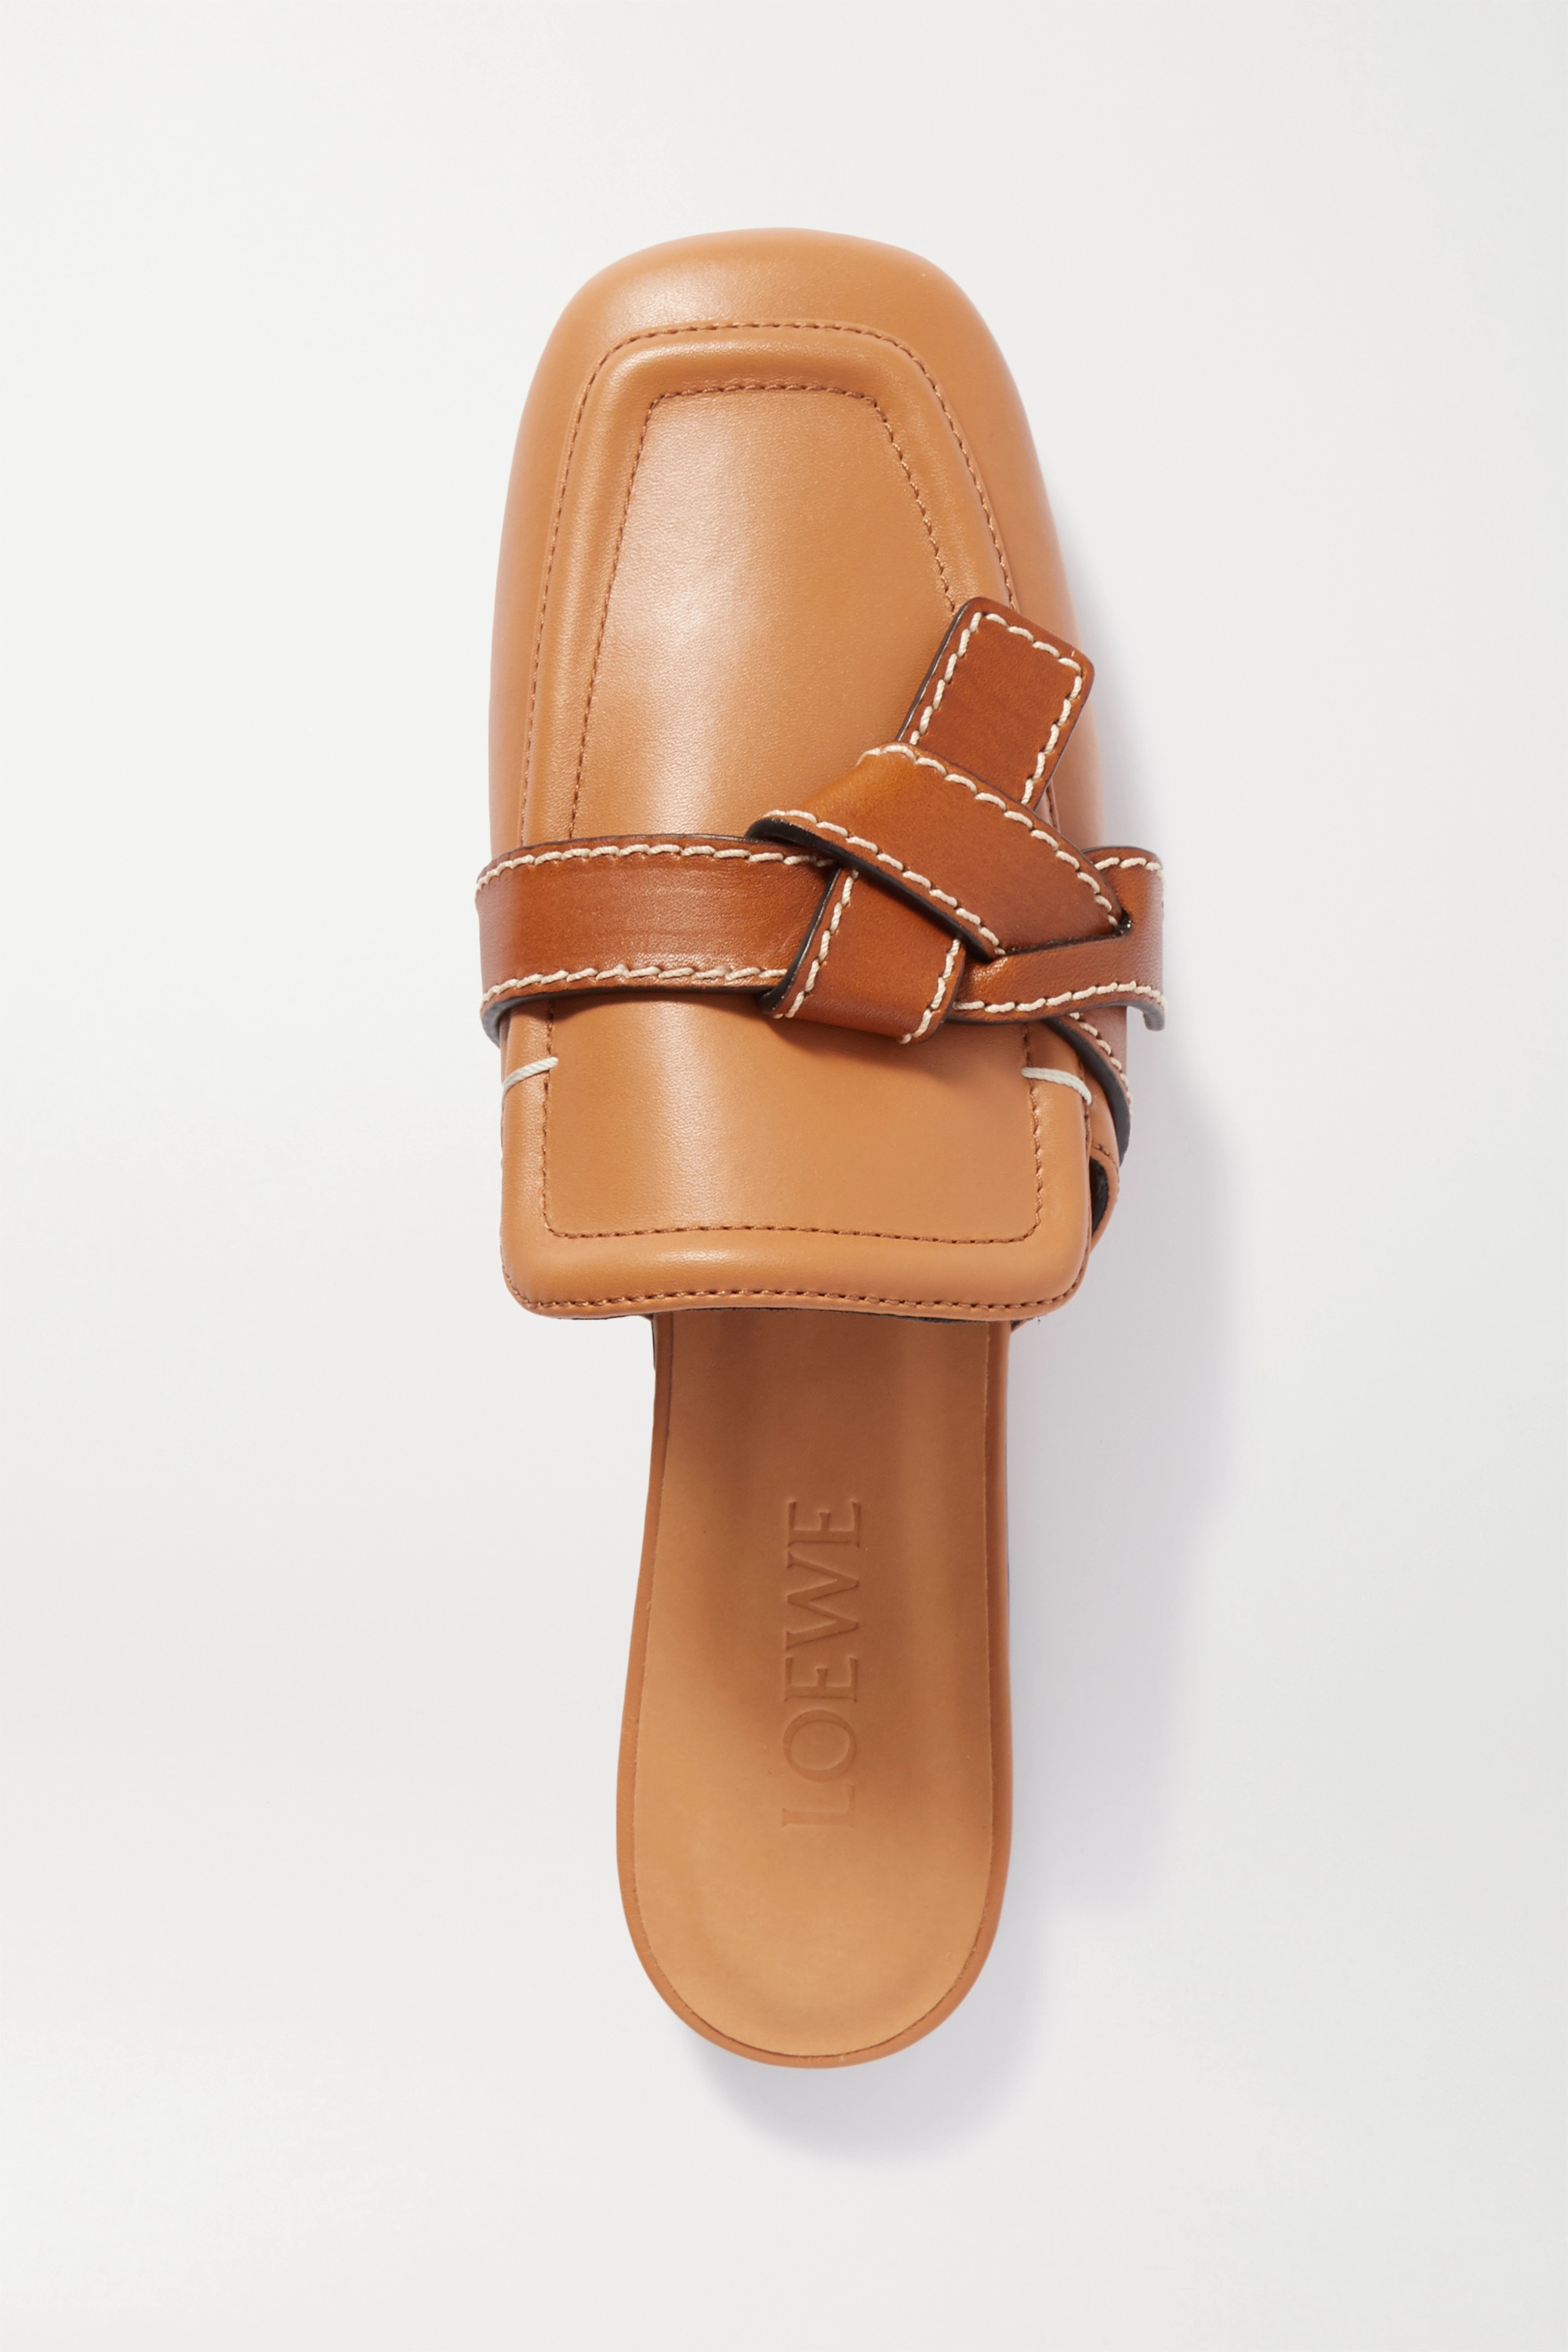 Loewe Gate two-tone topstitched leather loafers